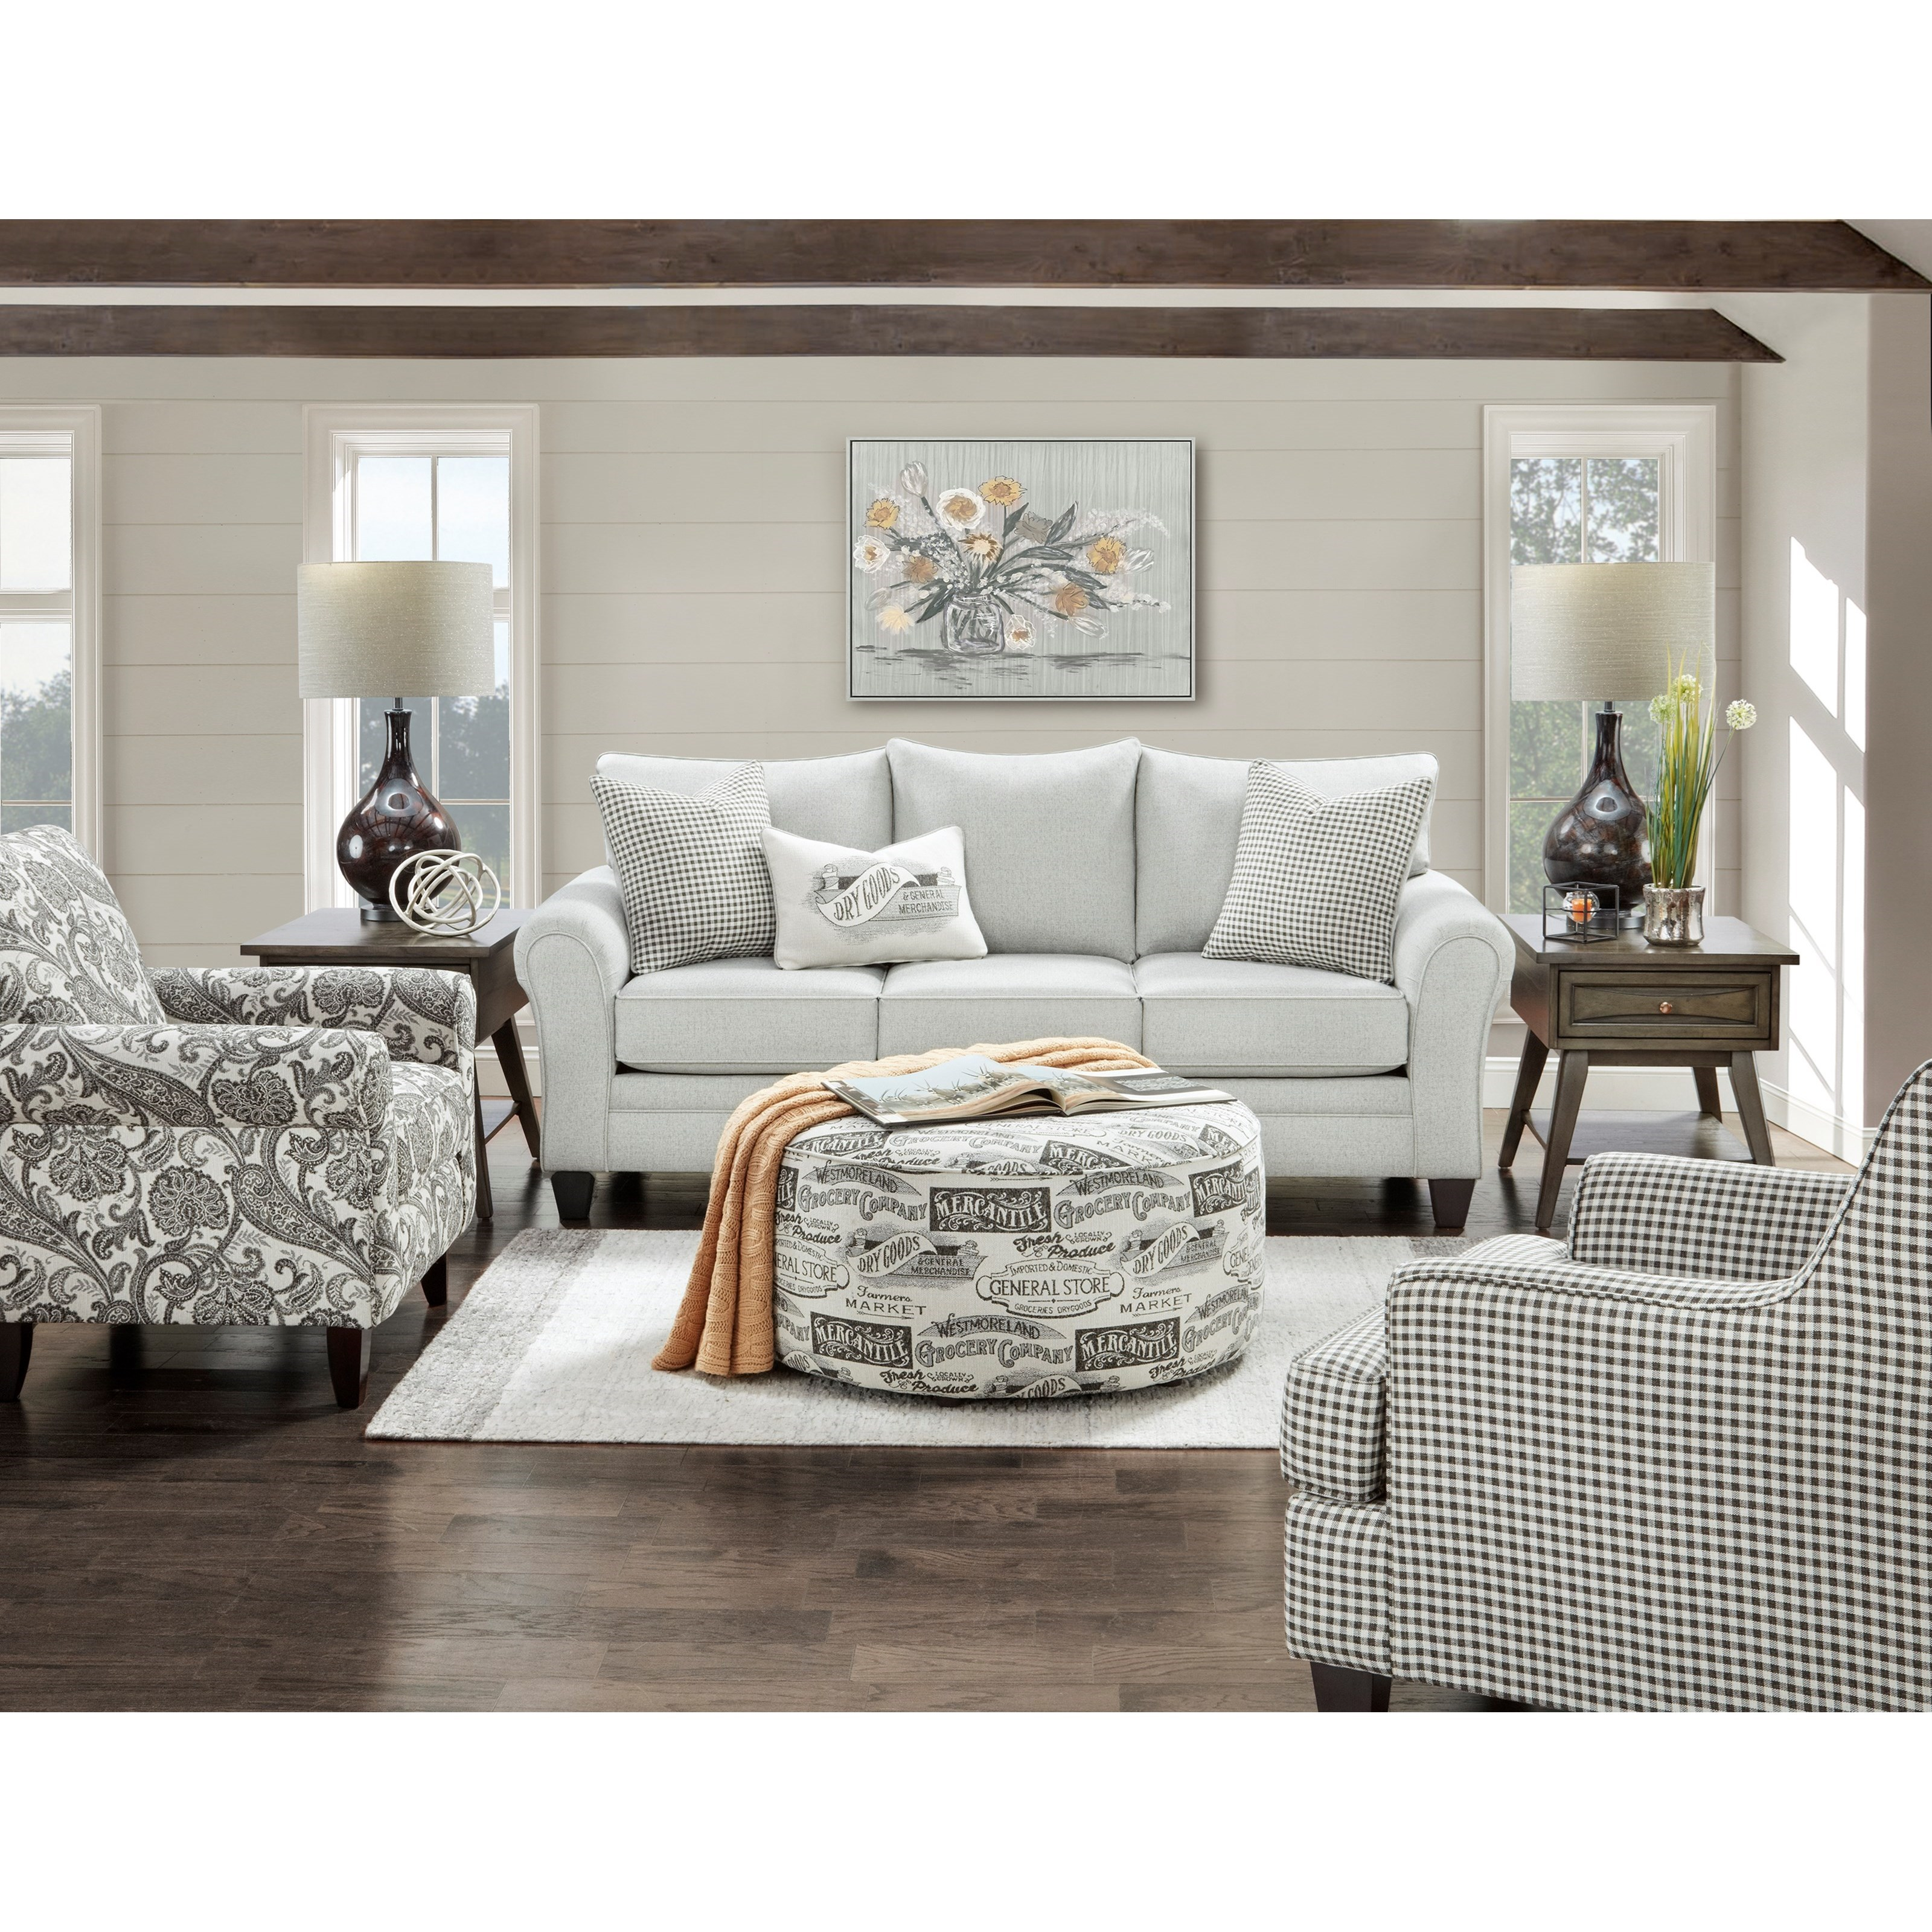 44-00 Living Room Group by Fusion Furniture at Miller Waldrop Furniture and Decor